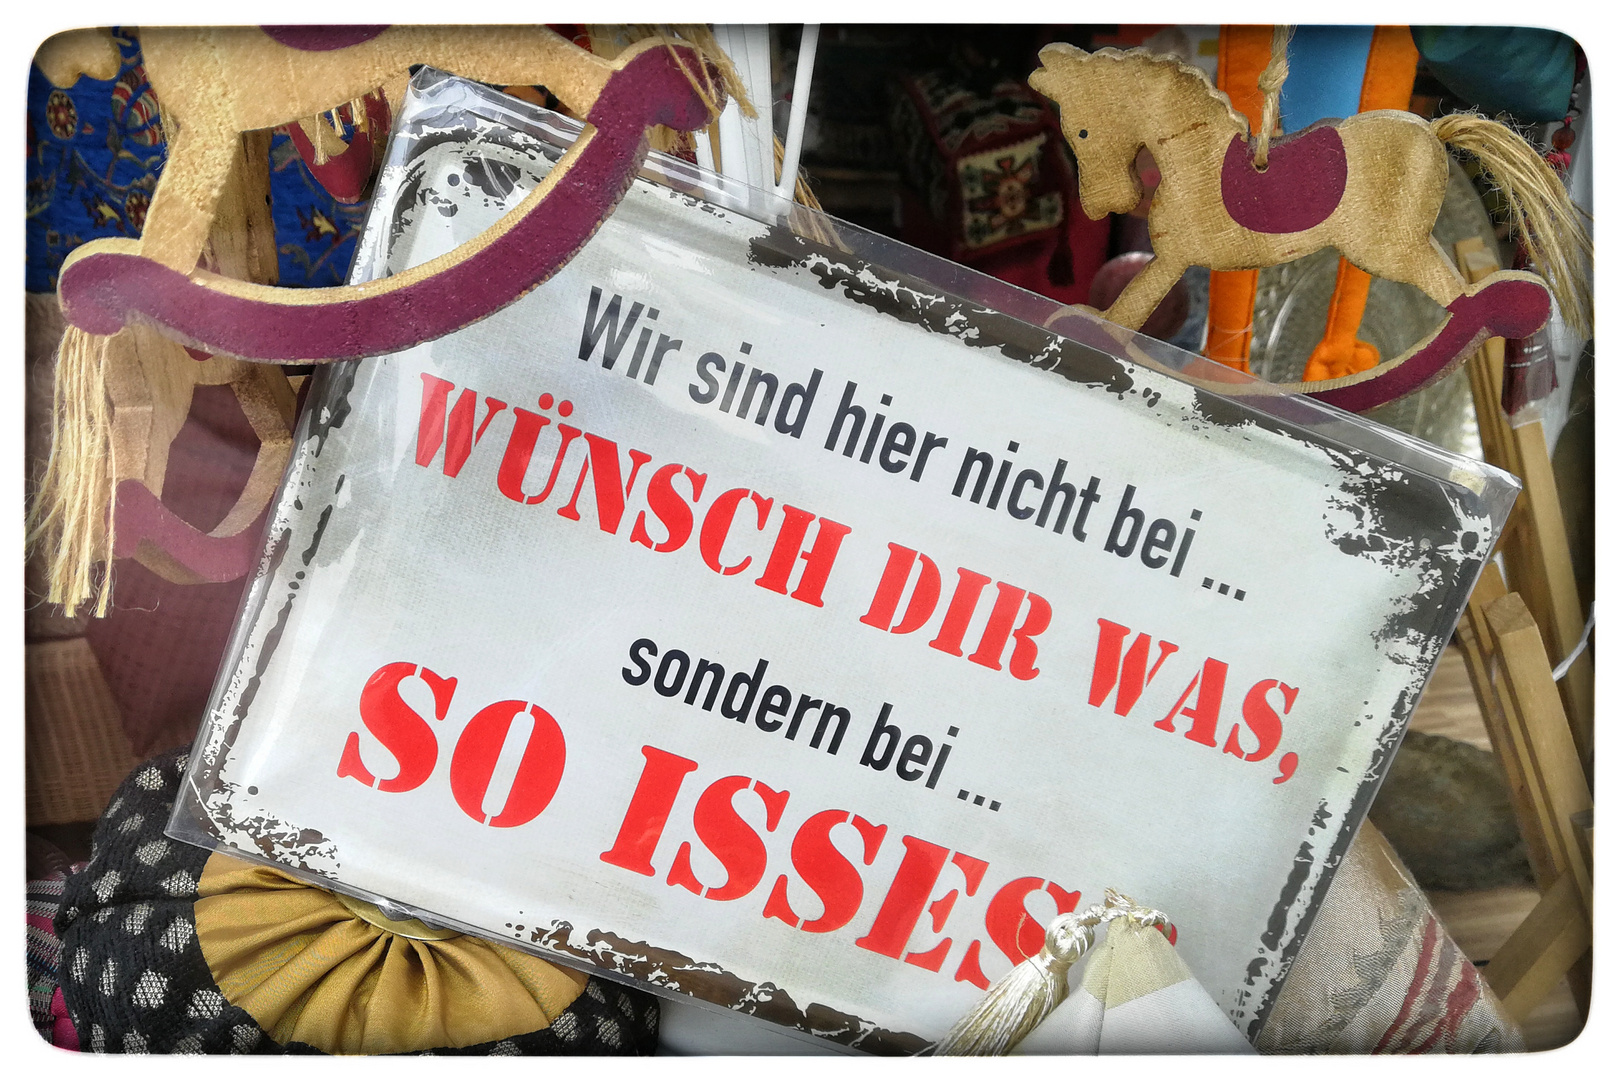 So isses ...